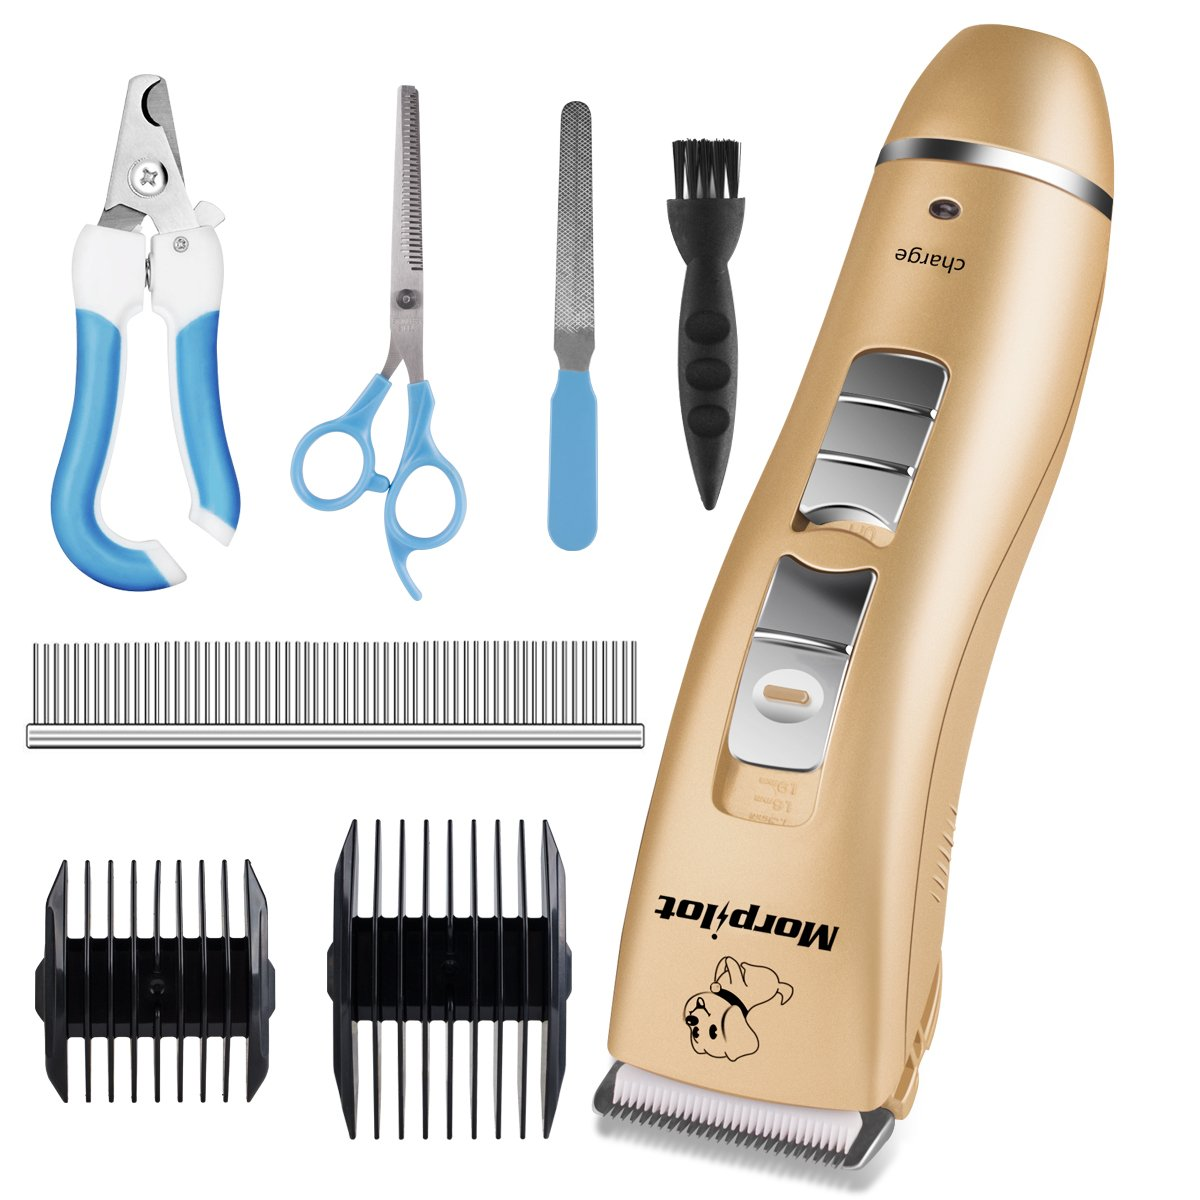 Morpilot Dog Clippers Cordless Low Noise Pet Hair Clippers Grooming Kit Trimmer Rechargeable Professional Nail Clipper Kit for Small Dogs Cats Long Short Hair